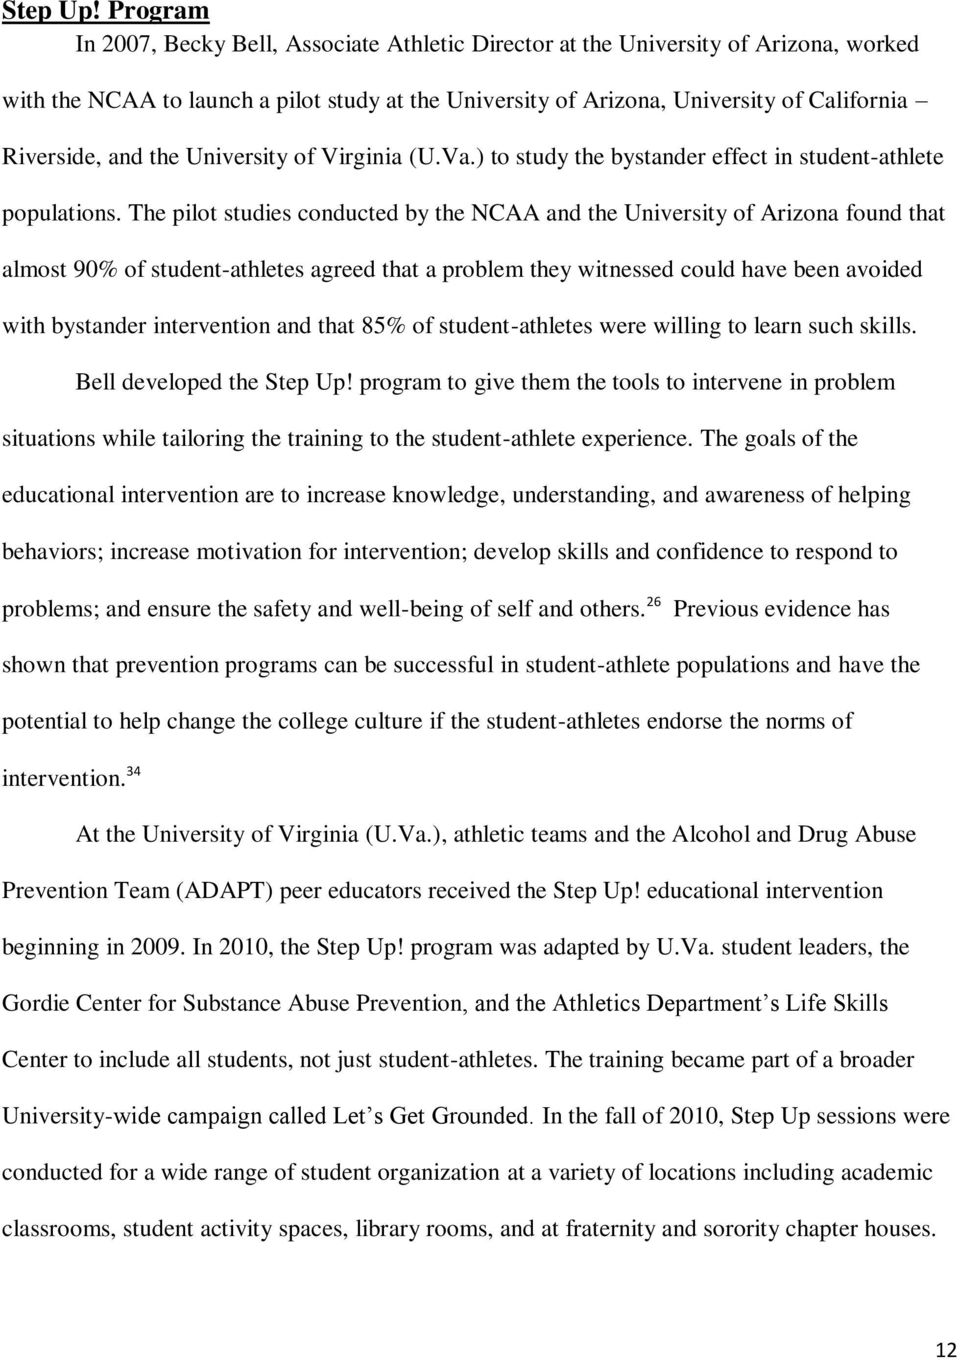 and the University of Virginia (U.Va.) to study the bystander effect in student-athlete populations.